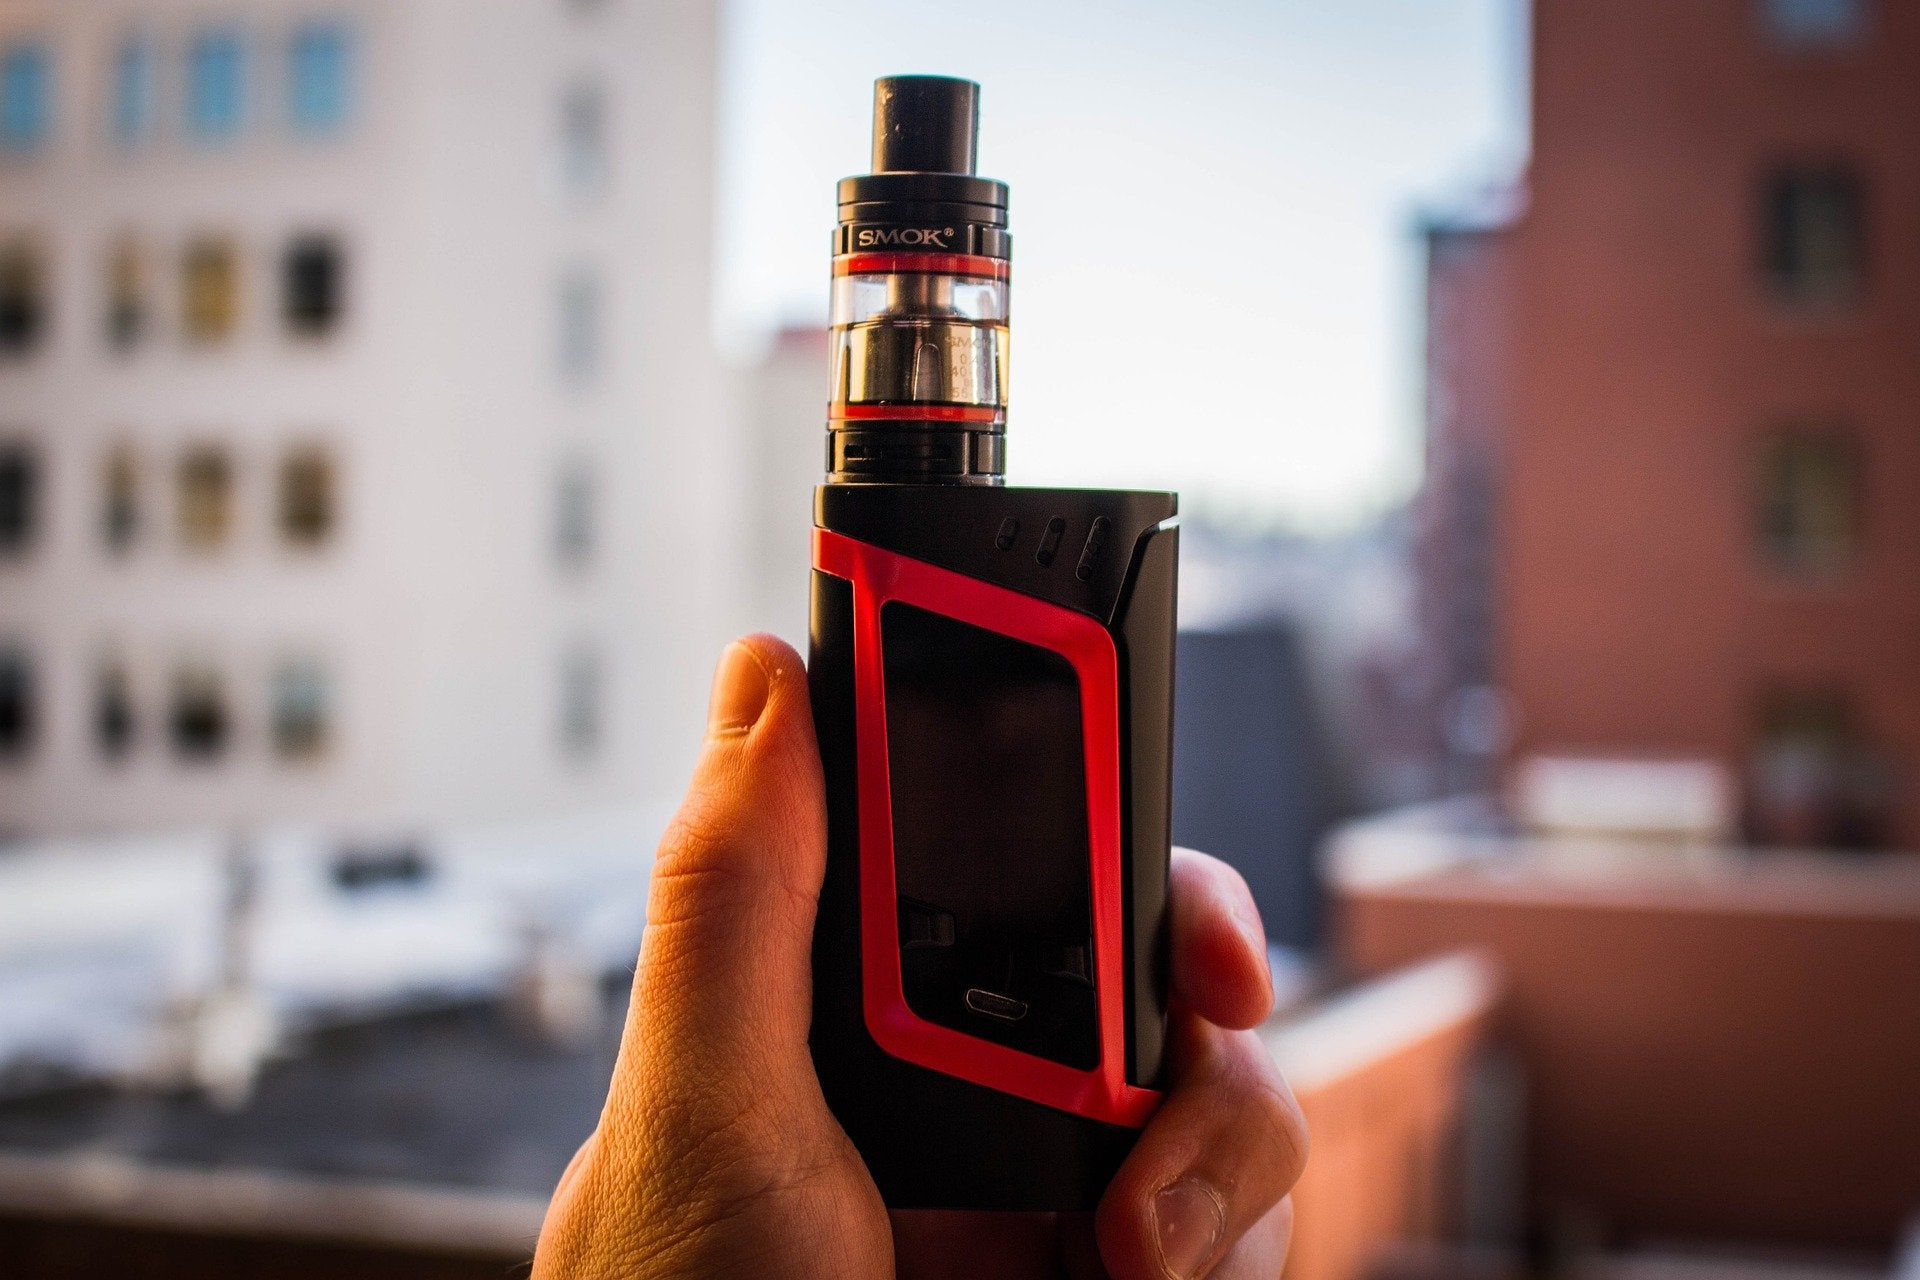 black and red vape mod in a person's hand